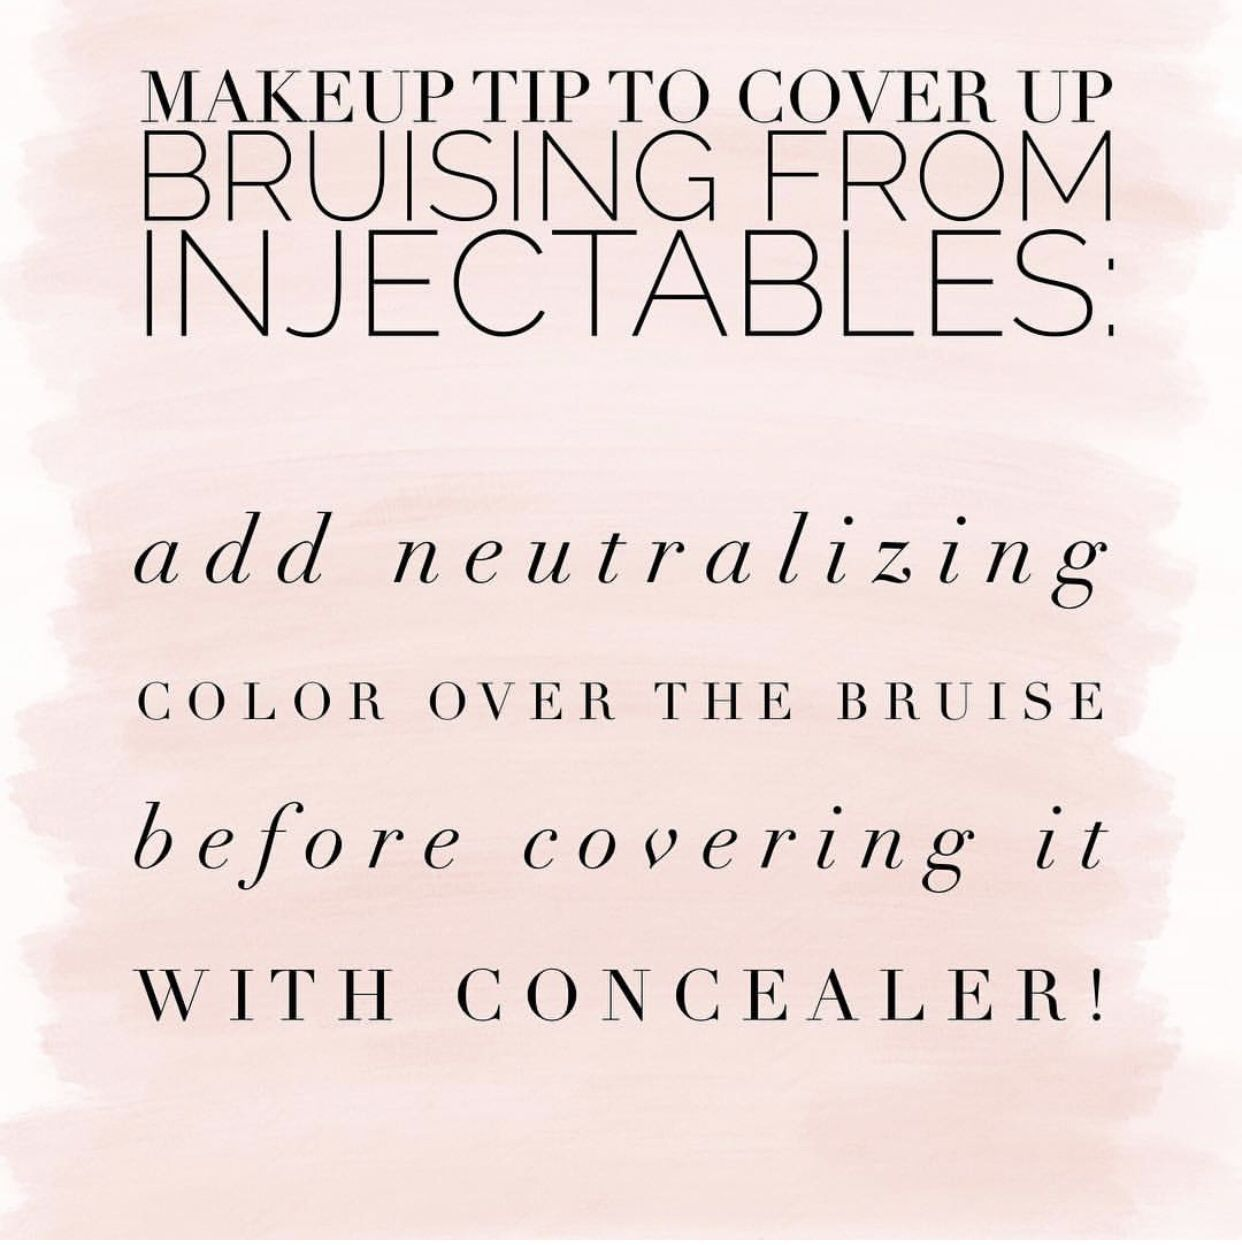 Tips and tricks to cover up unwanted bruising! Korean